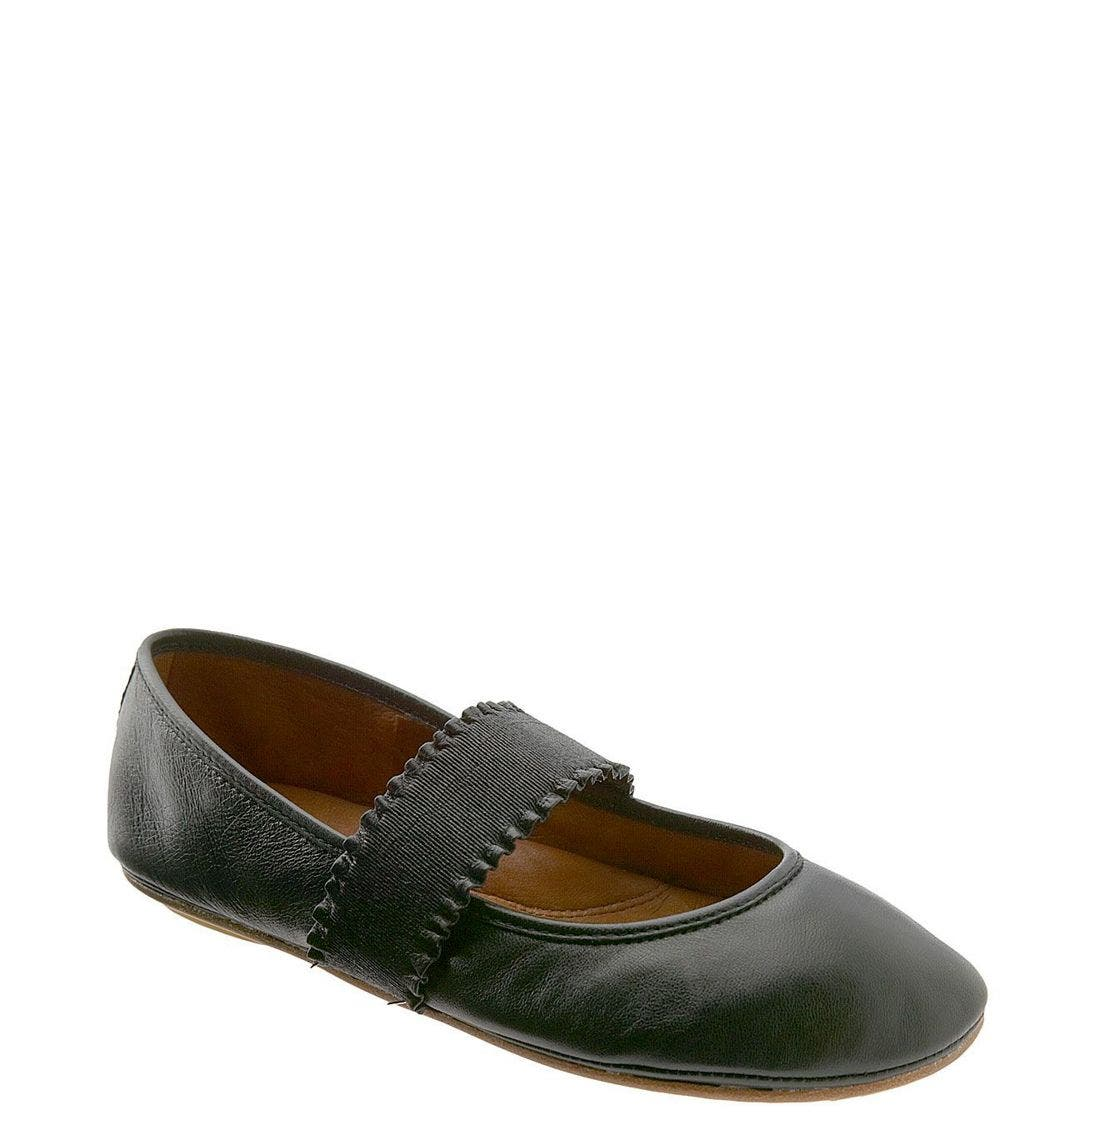 by Kenneth Cole 'Gabby' Flat,                             Main thumbnail 1, color,                             Black